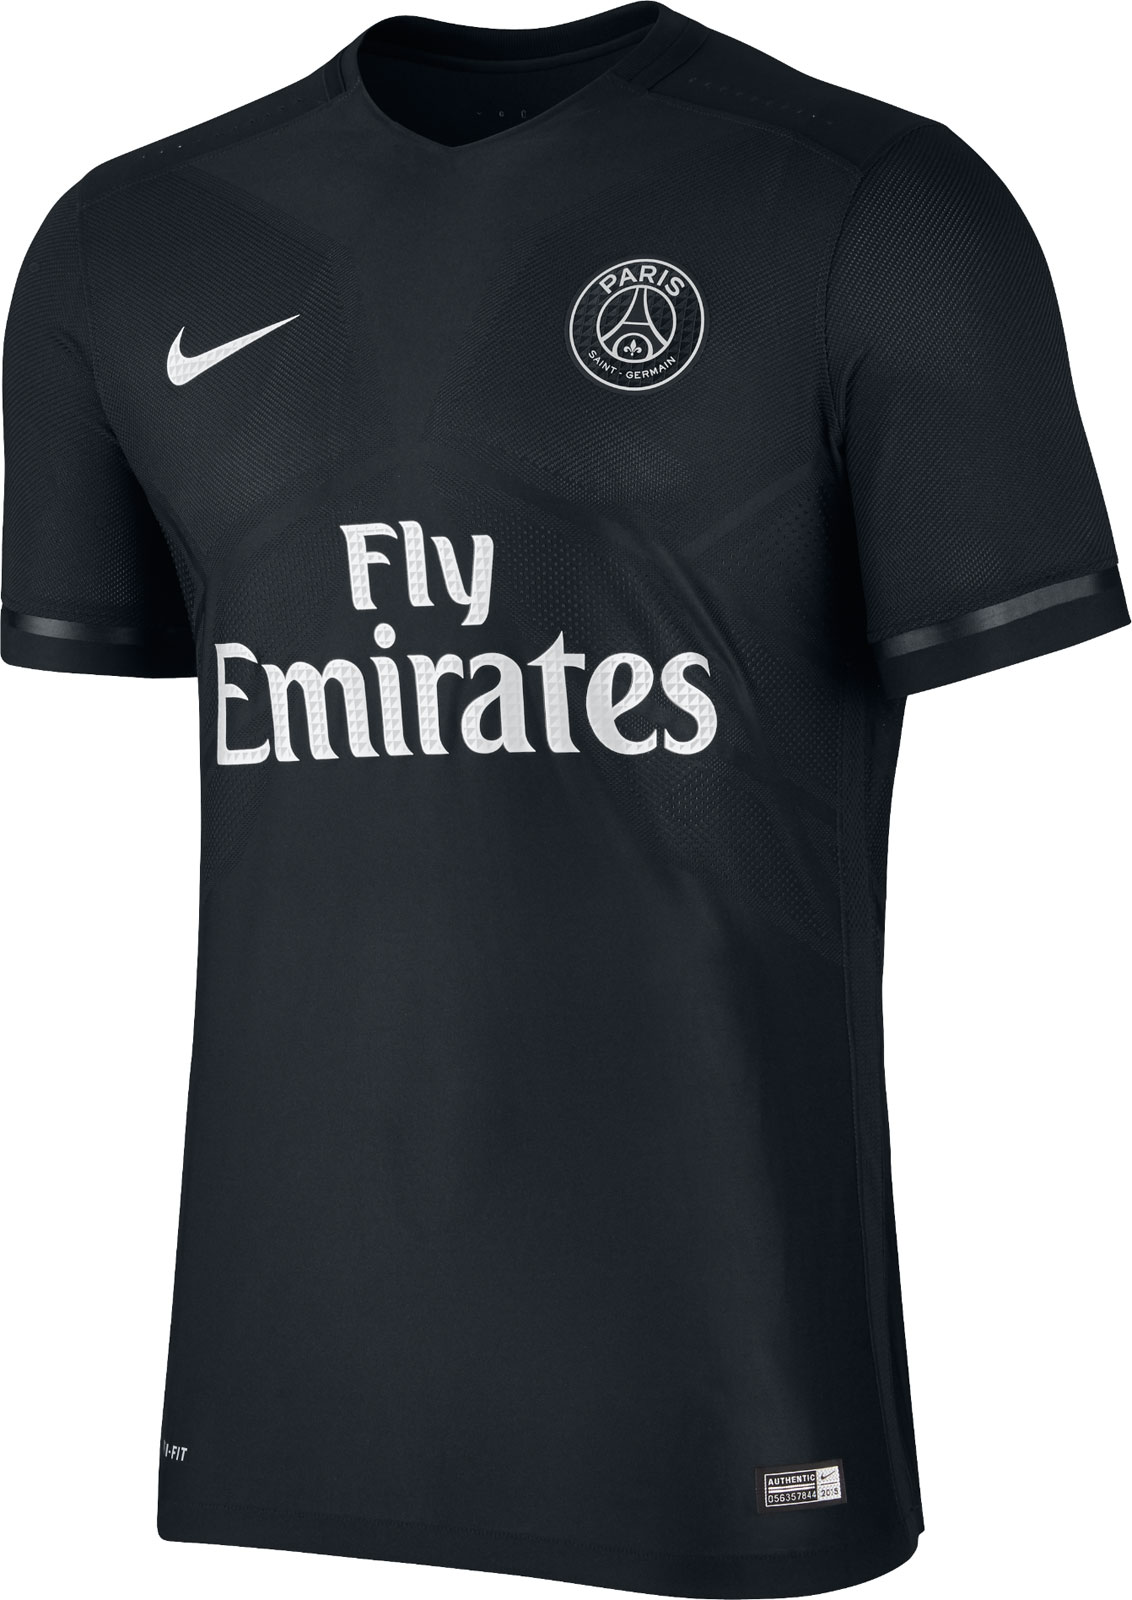 nike shox hommes rivaux - Paris Saint-Germain 15-16 Champions League Home Kit Released ...